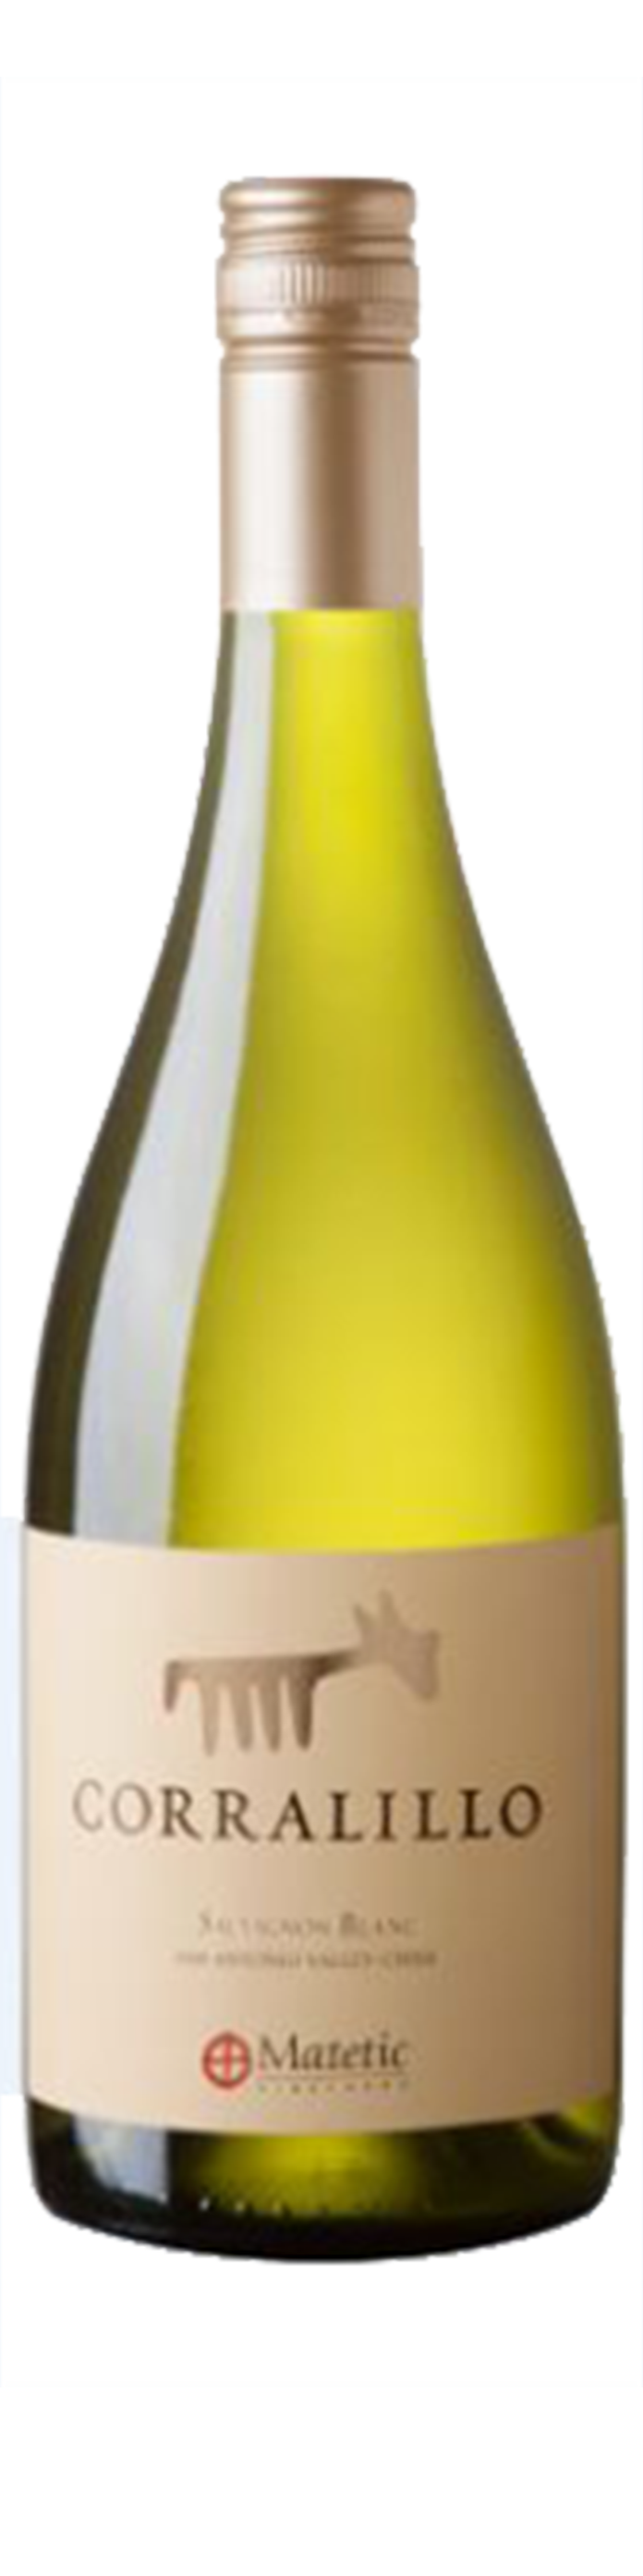 Image of product Corralillo Sauvignon Blanc